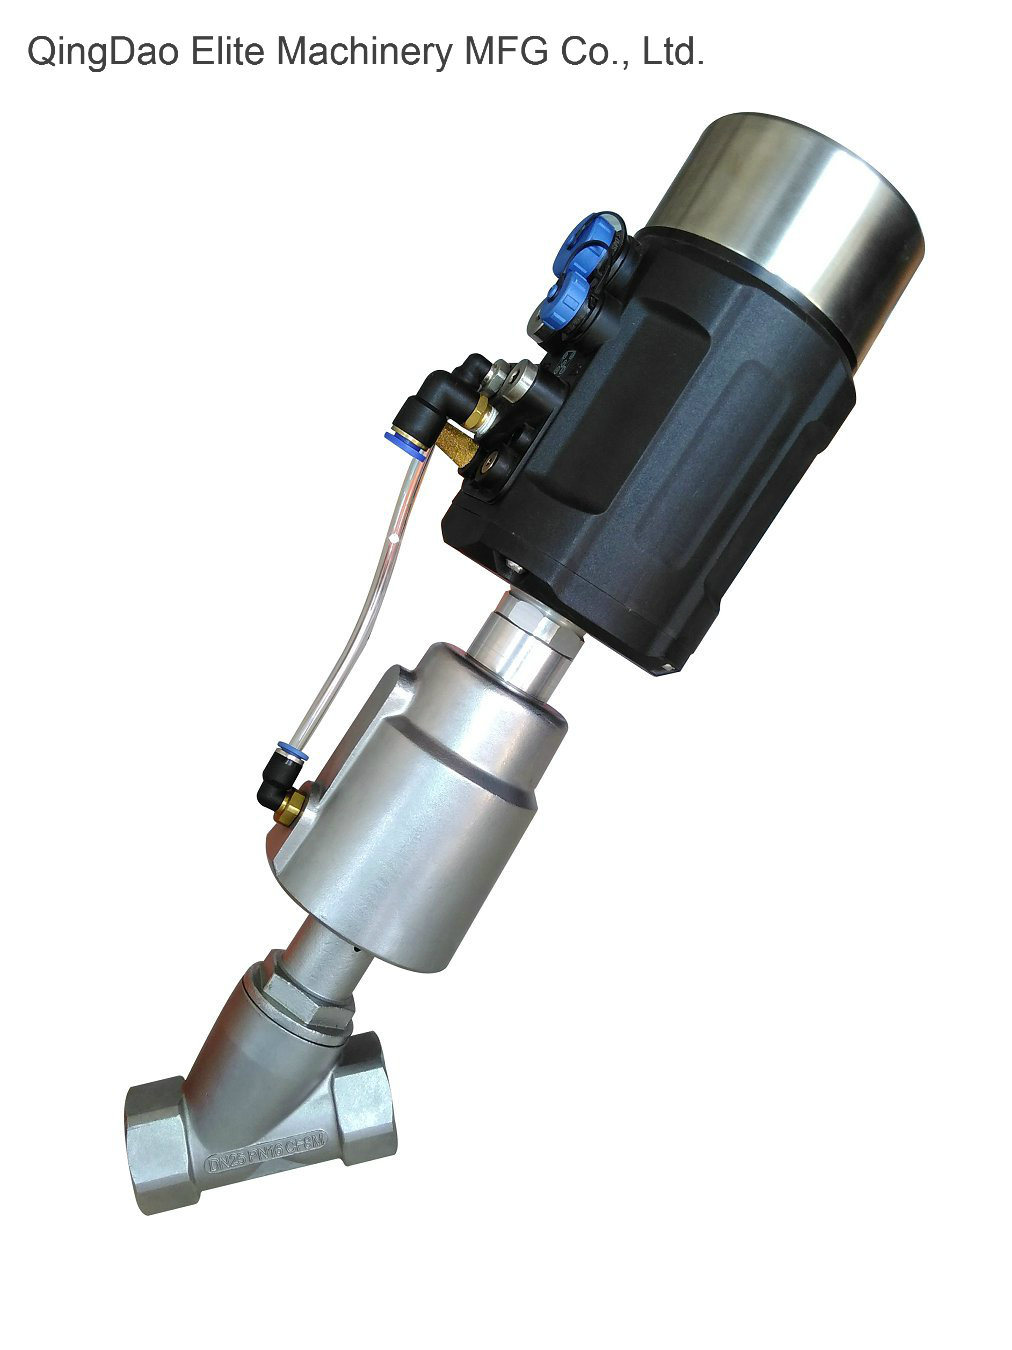 105 Inteligent Proportional Control Angle Valve